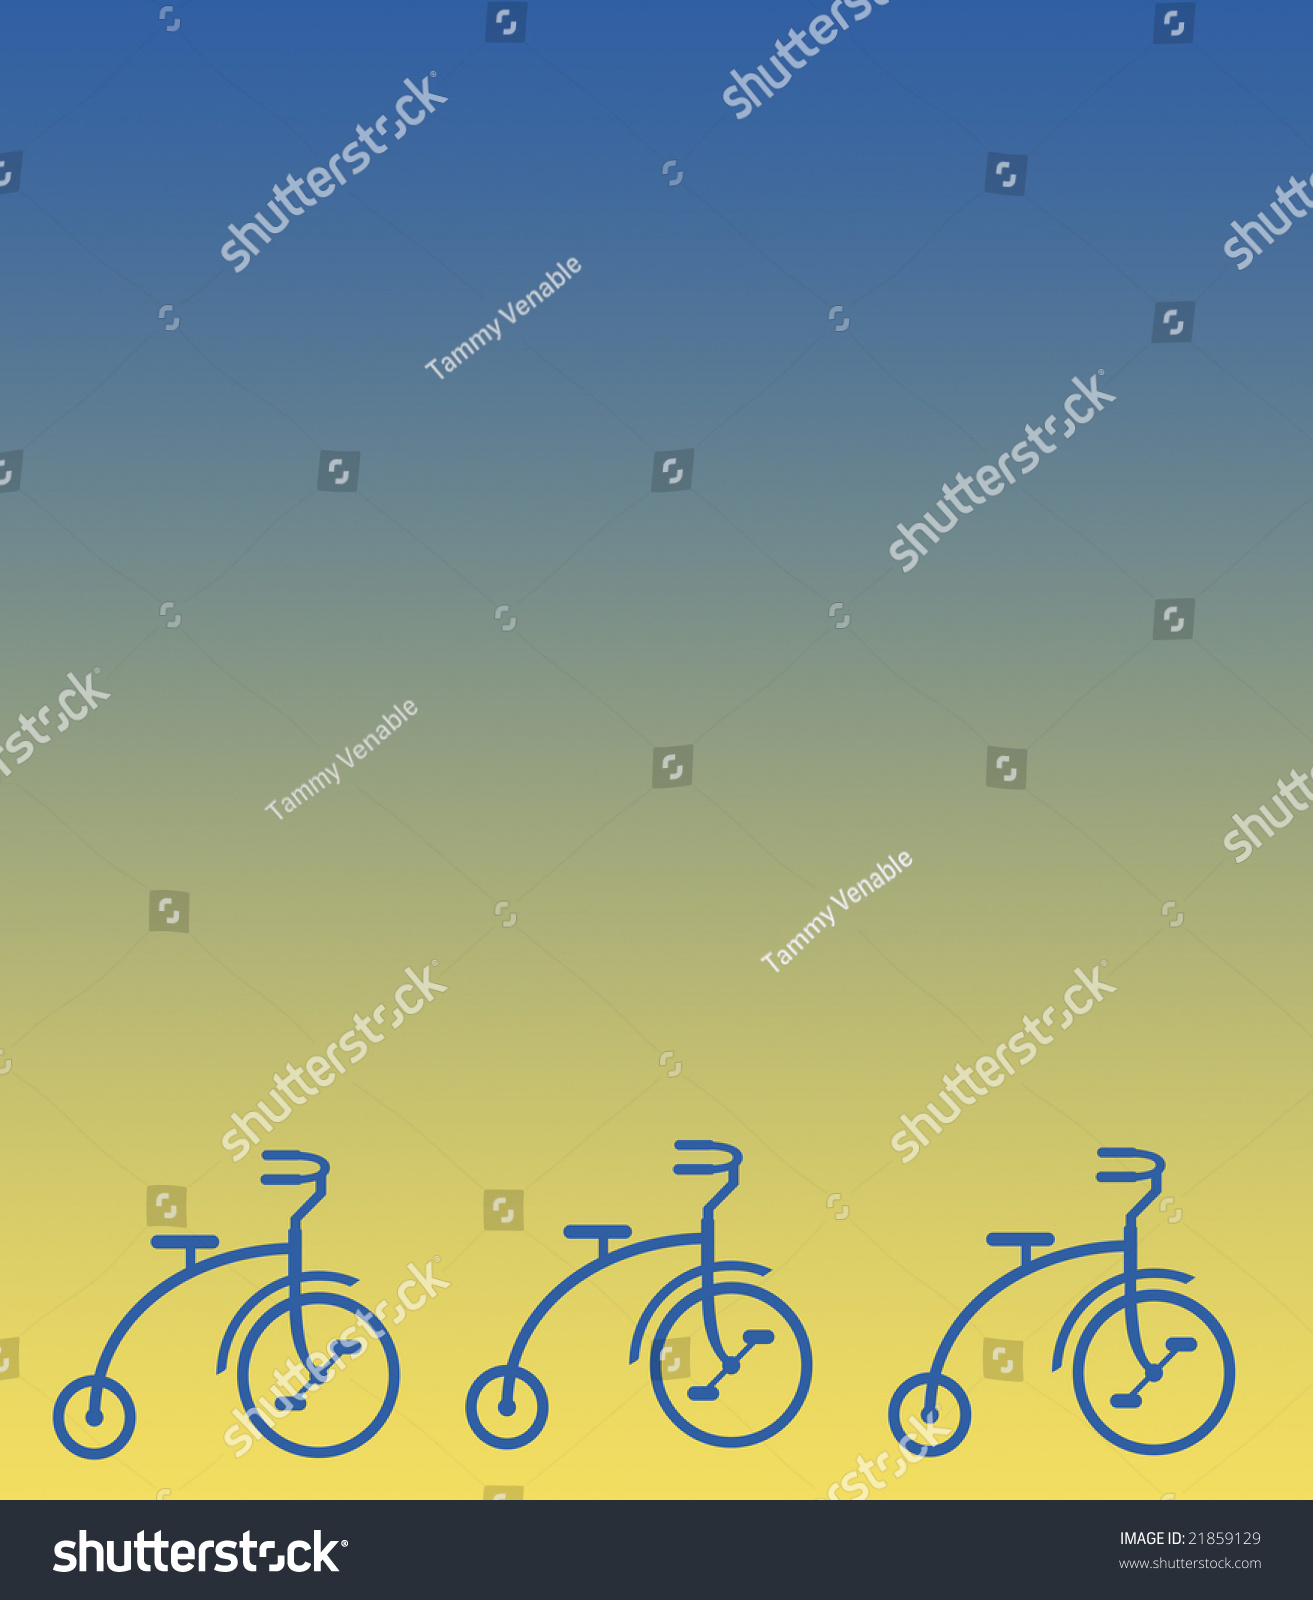 tricycles border on blue tan gradient stock illustration 21859129 shutterstock